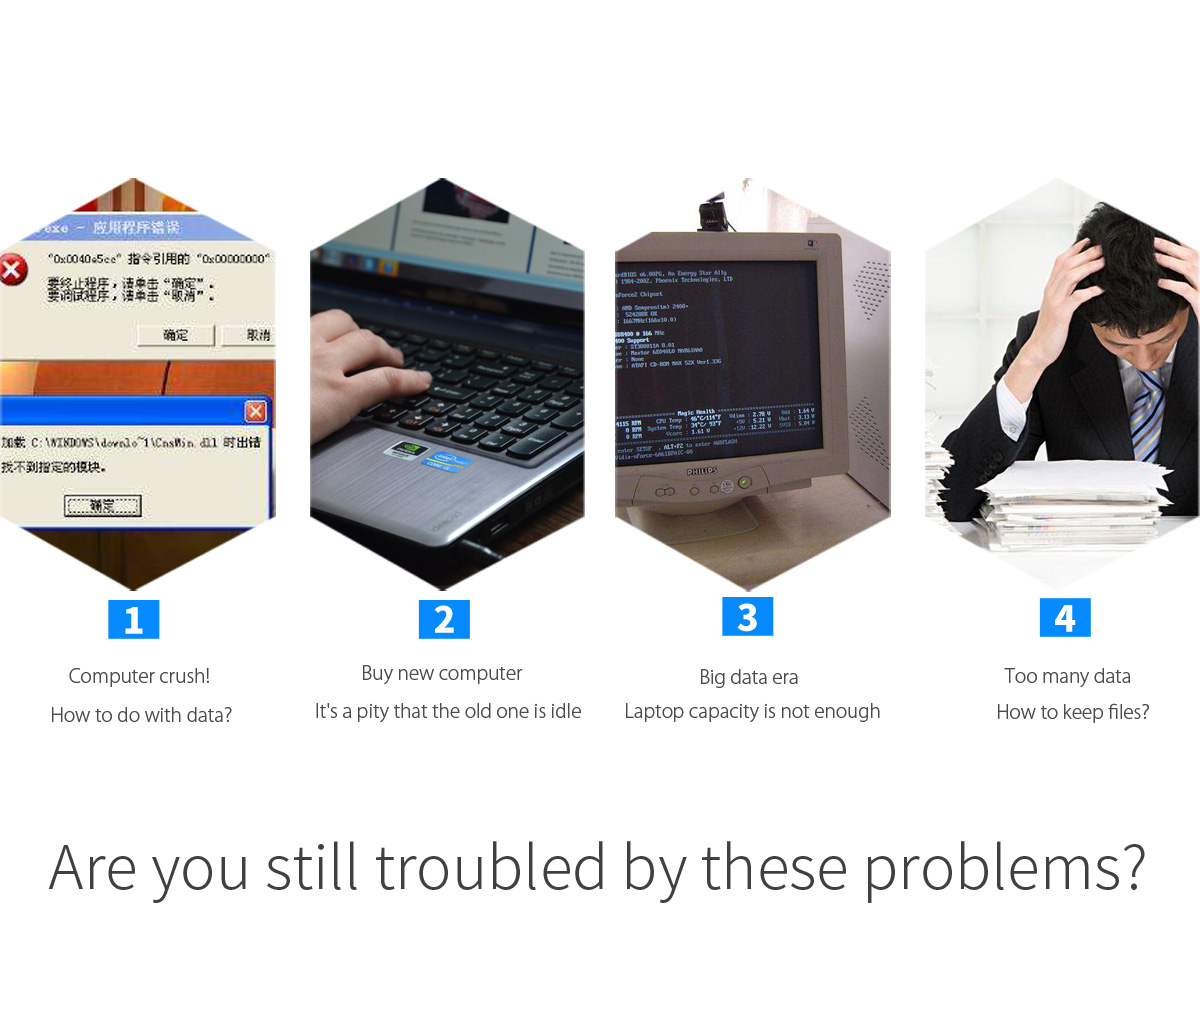 Are you still troubled by these problems